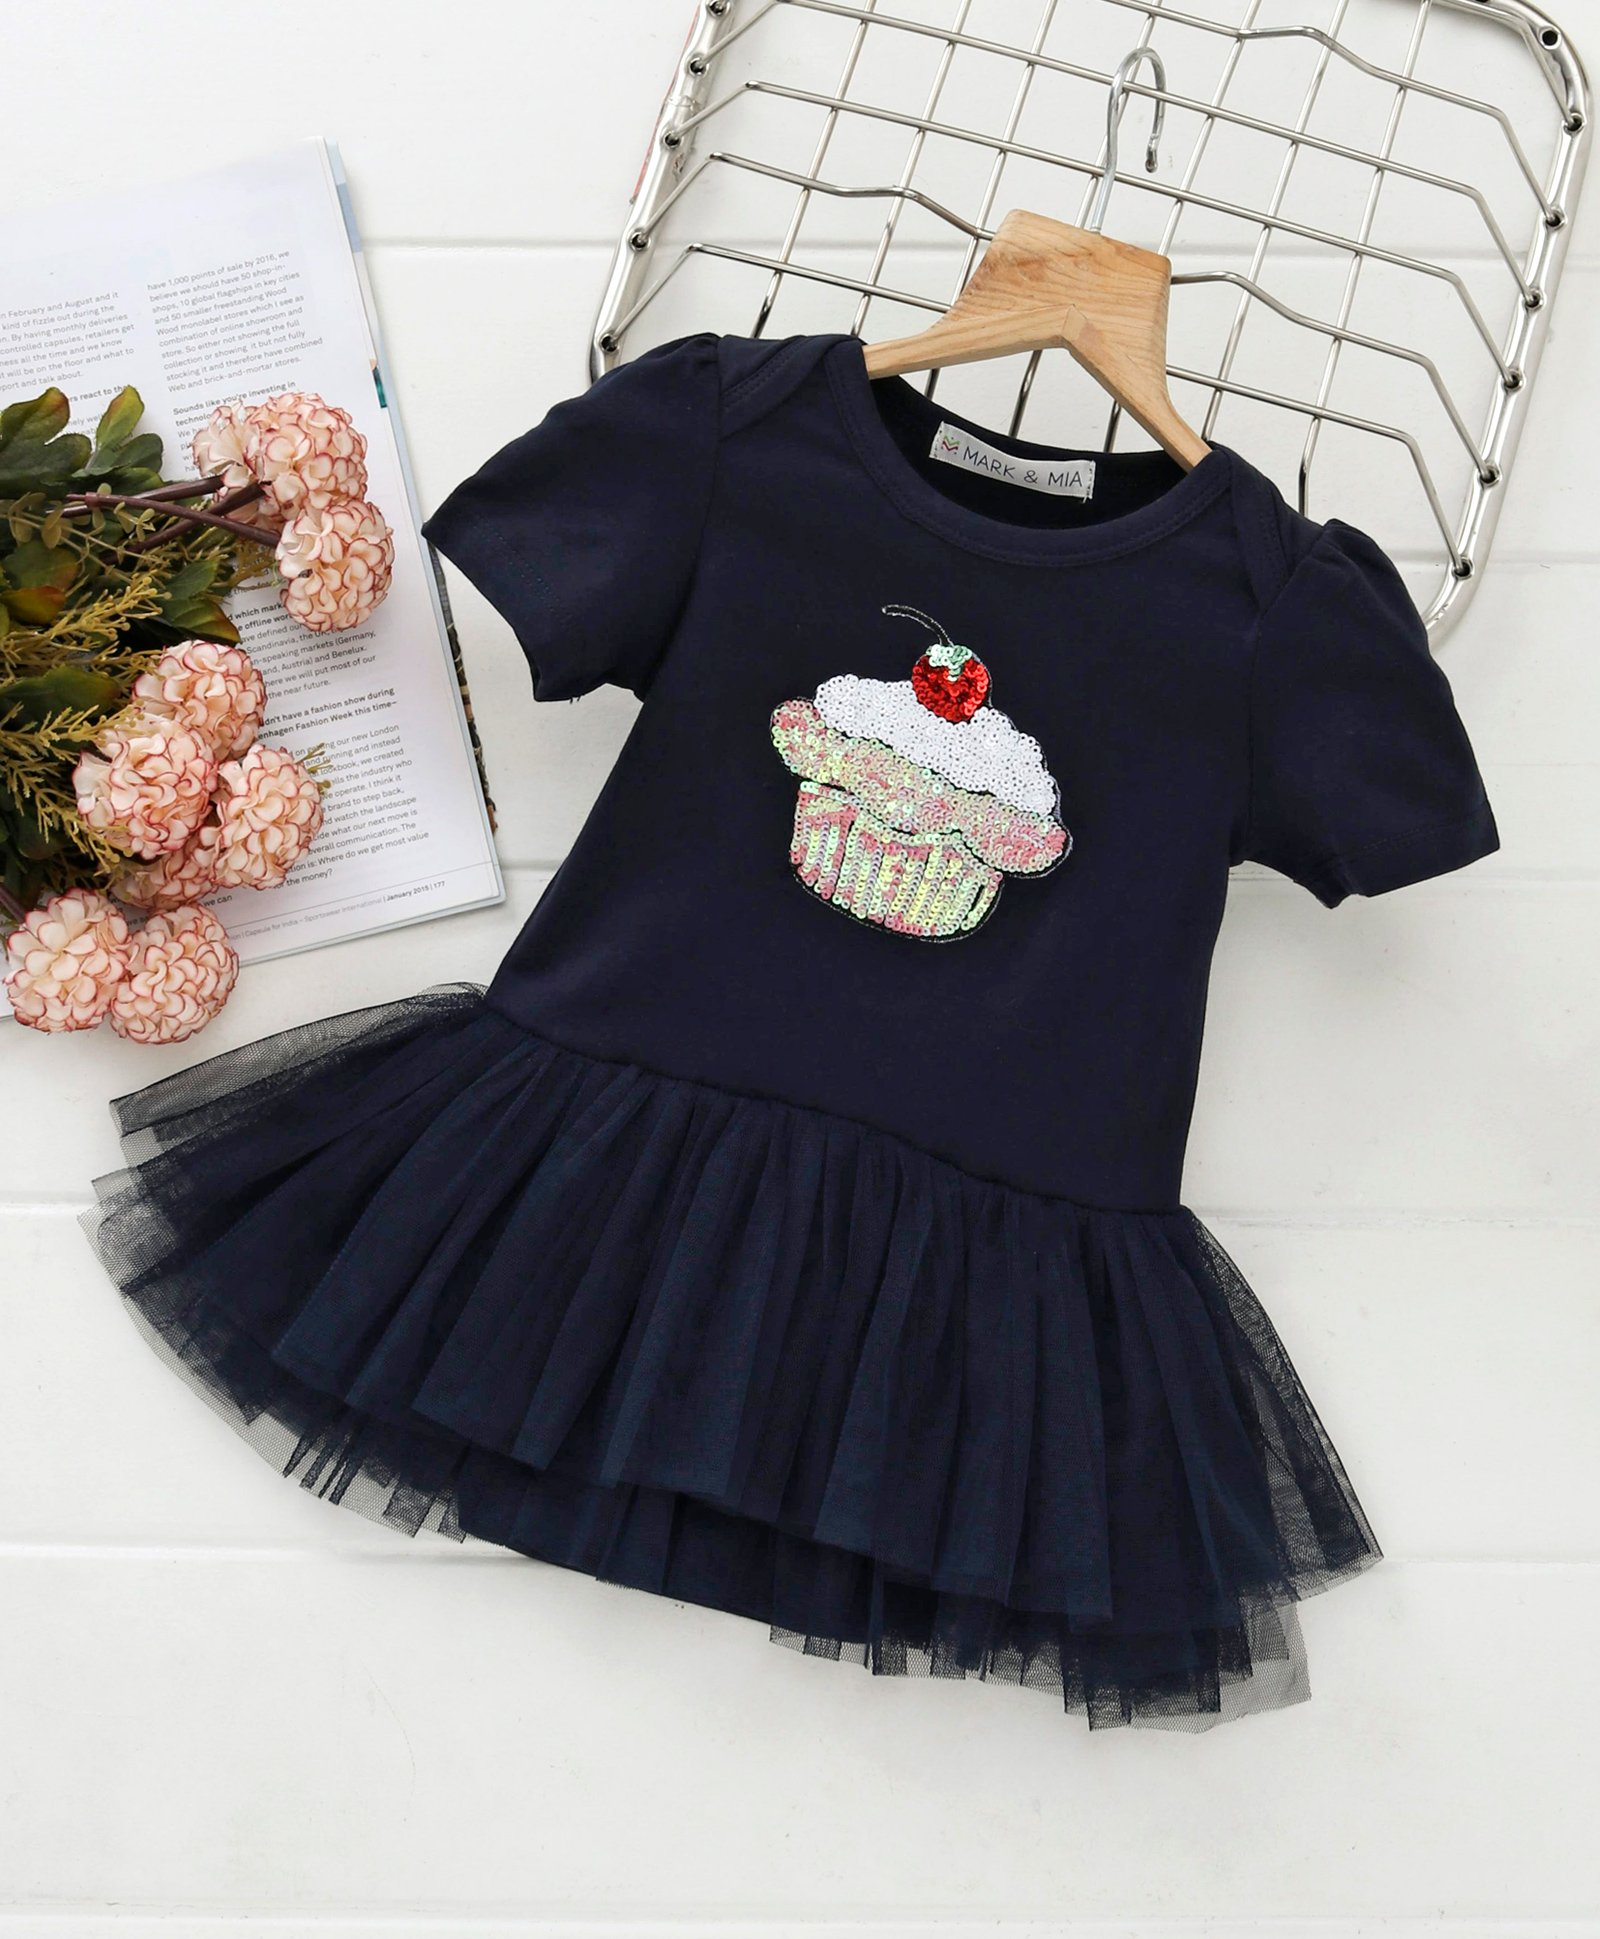 17fb19cfbc68c Buy Mark & Mia Sequined Cupcake Design Half Sleeves Onesie Dress Navy for  Girls (9-12 Months) Online in India, Shop at FirstCry.com - 2402881